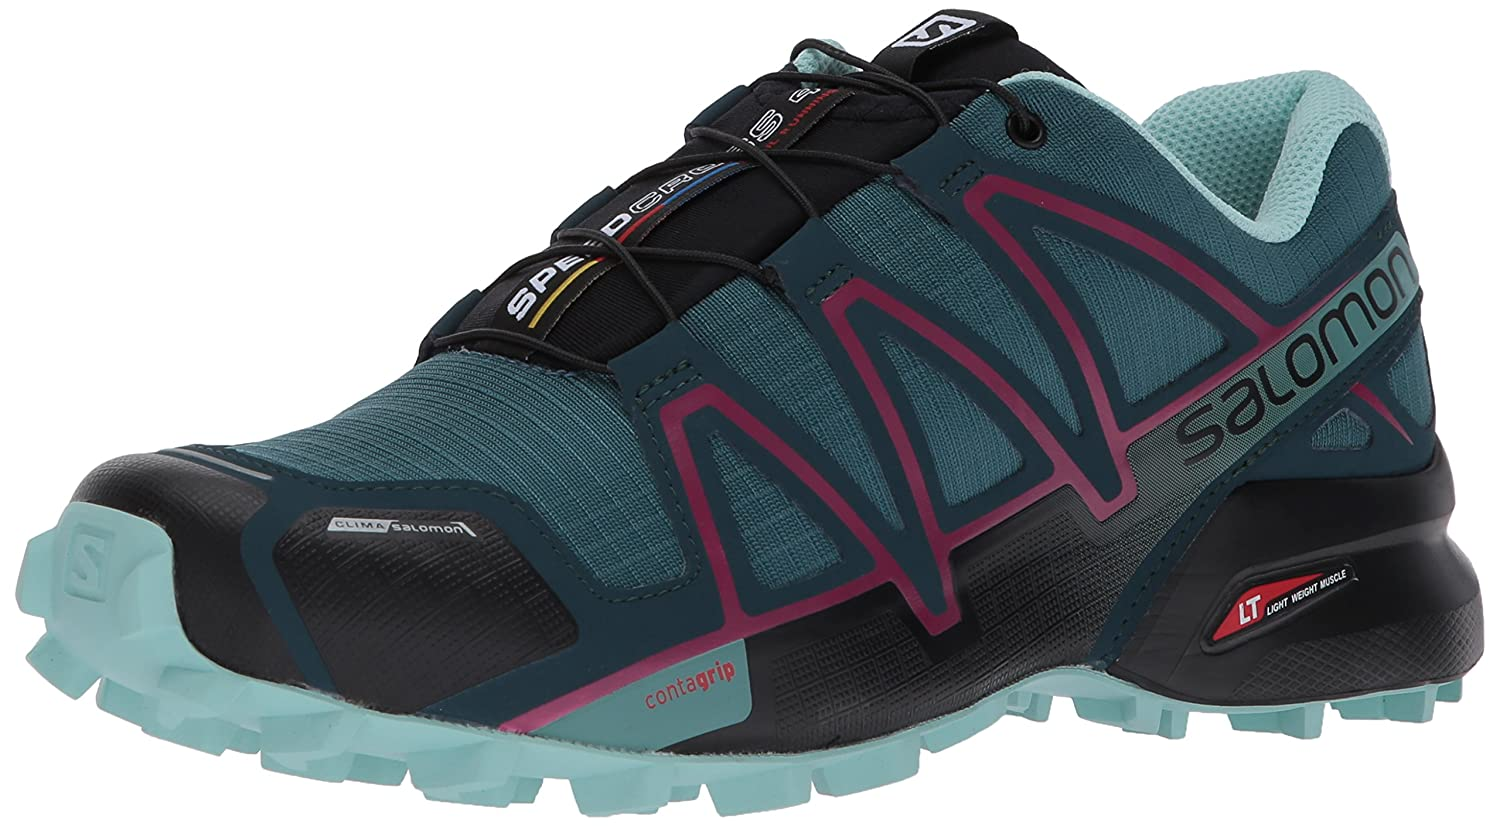 Bleu (Mallard bleu Reflecting Pond Eggshell 000) SALOMON Speedcross 4 CS W, Chaussures de Trail Femme 43 1 3 EU